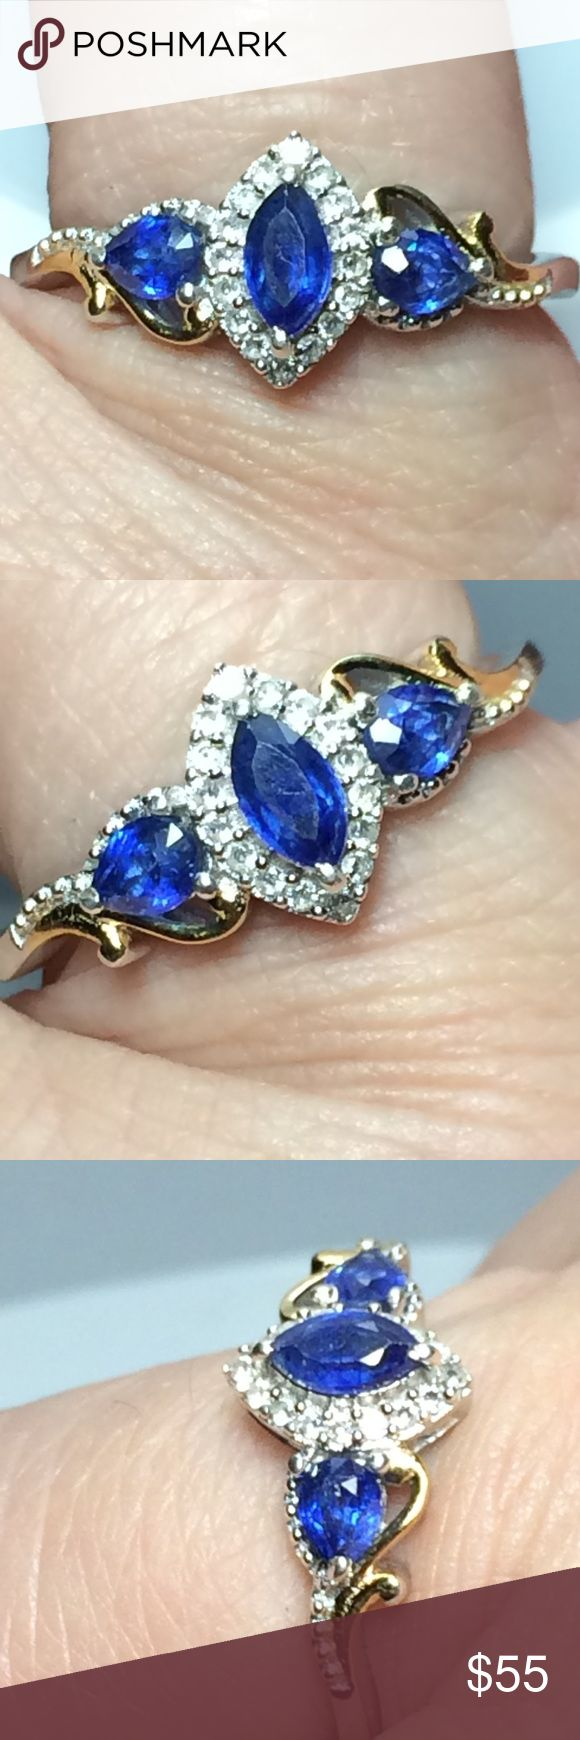 🔥NWT! Genuine Blue Sapphire + Zircon .925 Ring 🔥Just in! Brand New! Genuine Blue Sapphire (earth mined) + White Zircon (earth mined from Columbia) Platinum over .925 Sterling silver (nickel free) + accented with 14 kit yellow gold overlays! No junk! Brand new ! Tag on! 2.3tcw .. 19 stones! 16 zircon faceted rounds! 3 sapphires! 6x3 mm , (2) 4x3mm! ✔️earns free new mystery thank you gift ✔️ships quickly!✔️trusted top rated seller ✔️ manufacturer (usa) Jewelry Rings